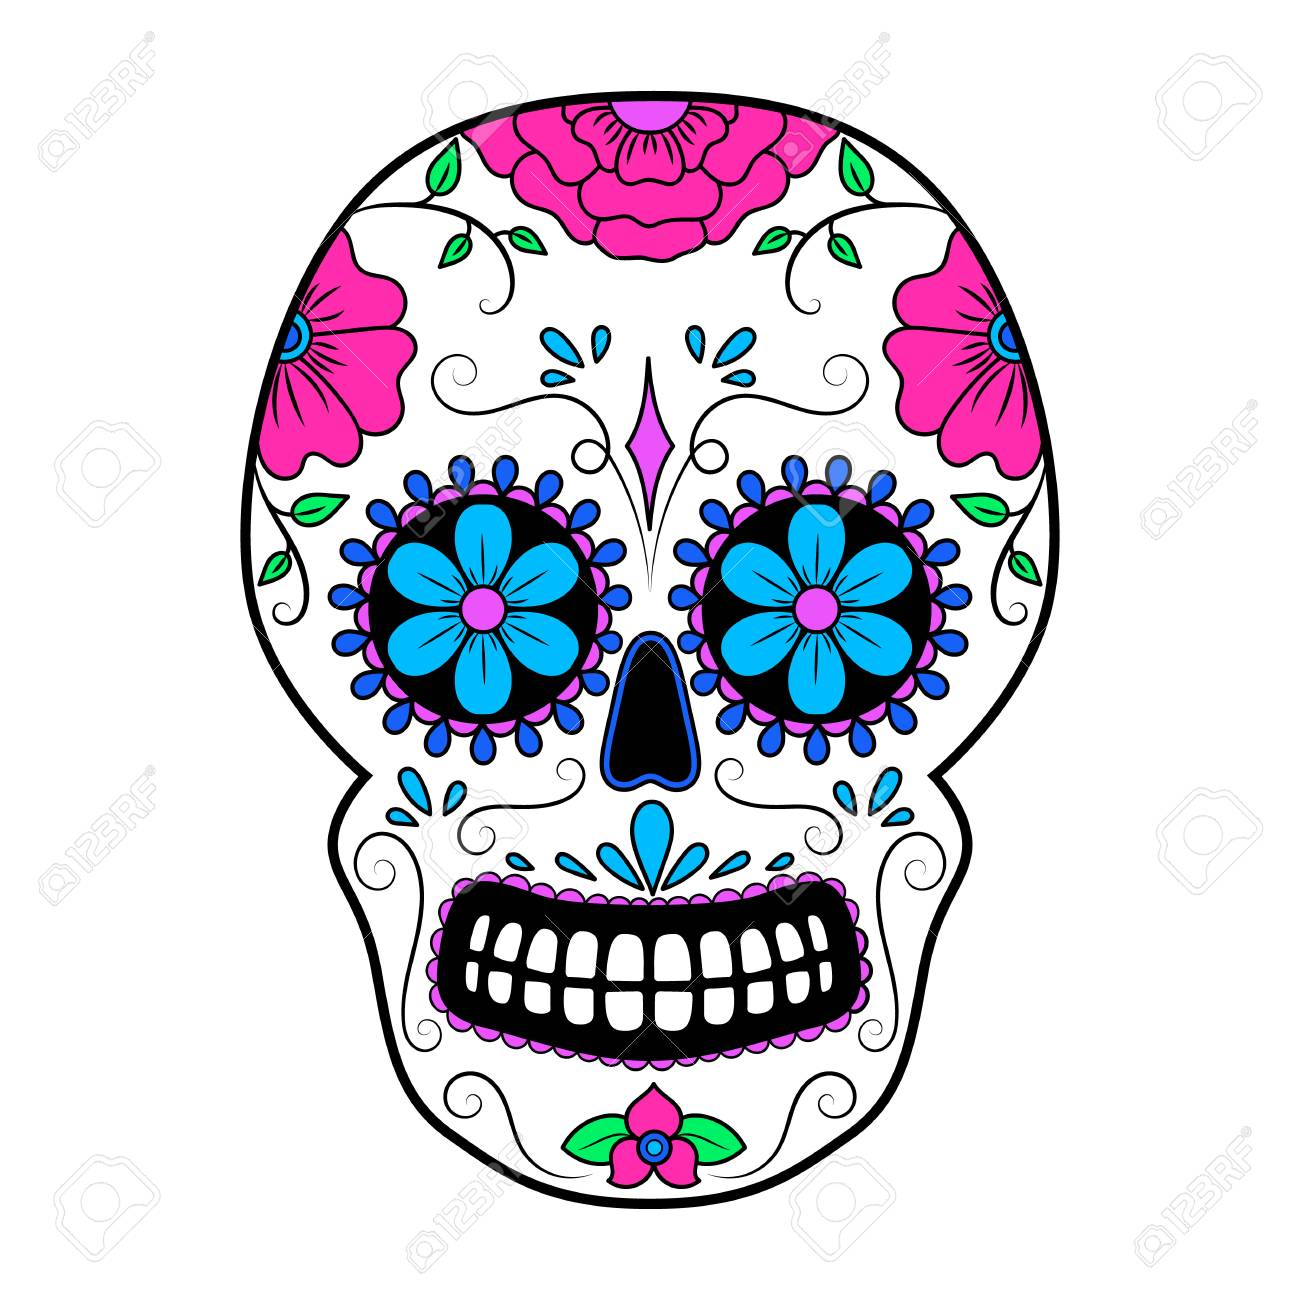 day of the dead colorful skull with floral ornament mexican rh 123rf com sugar skull vector image sugar skull vector free